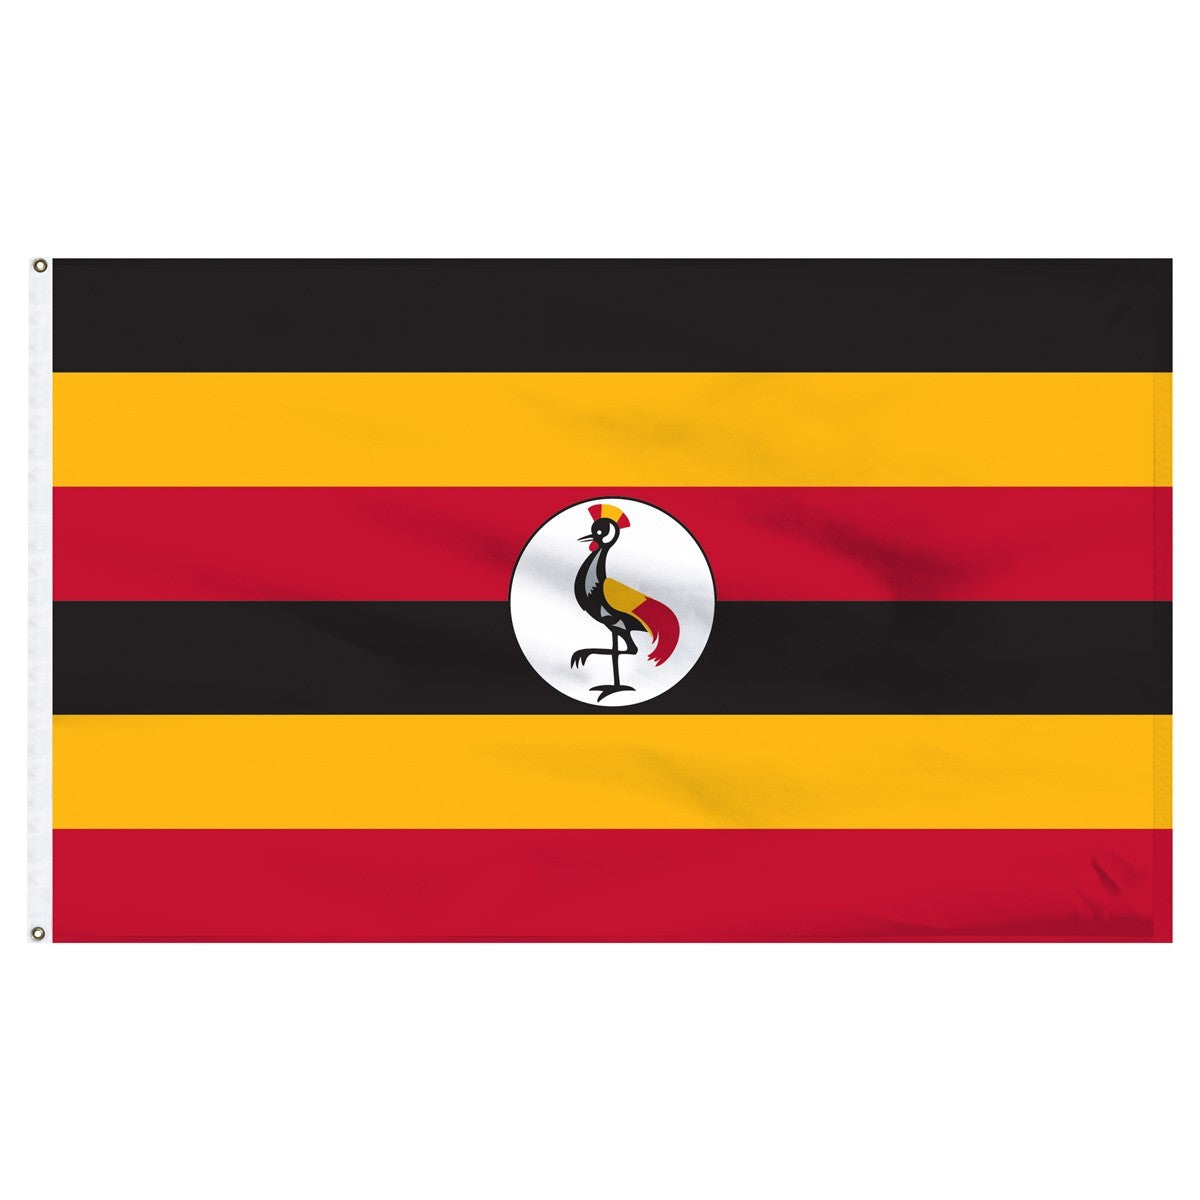 Uganda 3' x 5' Outdoor Nylon Flag